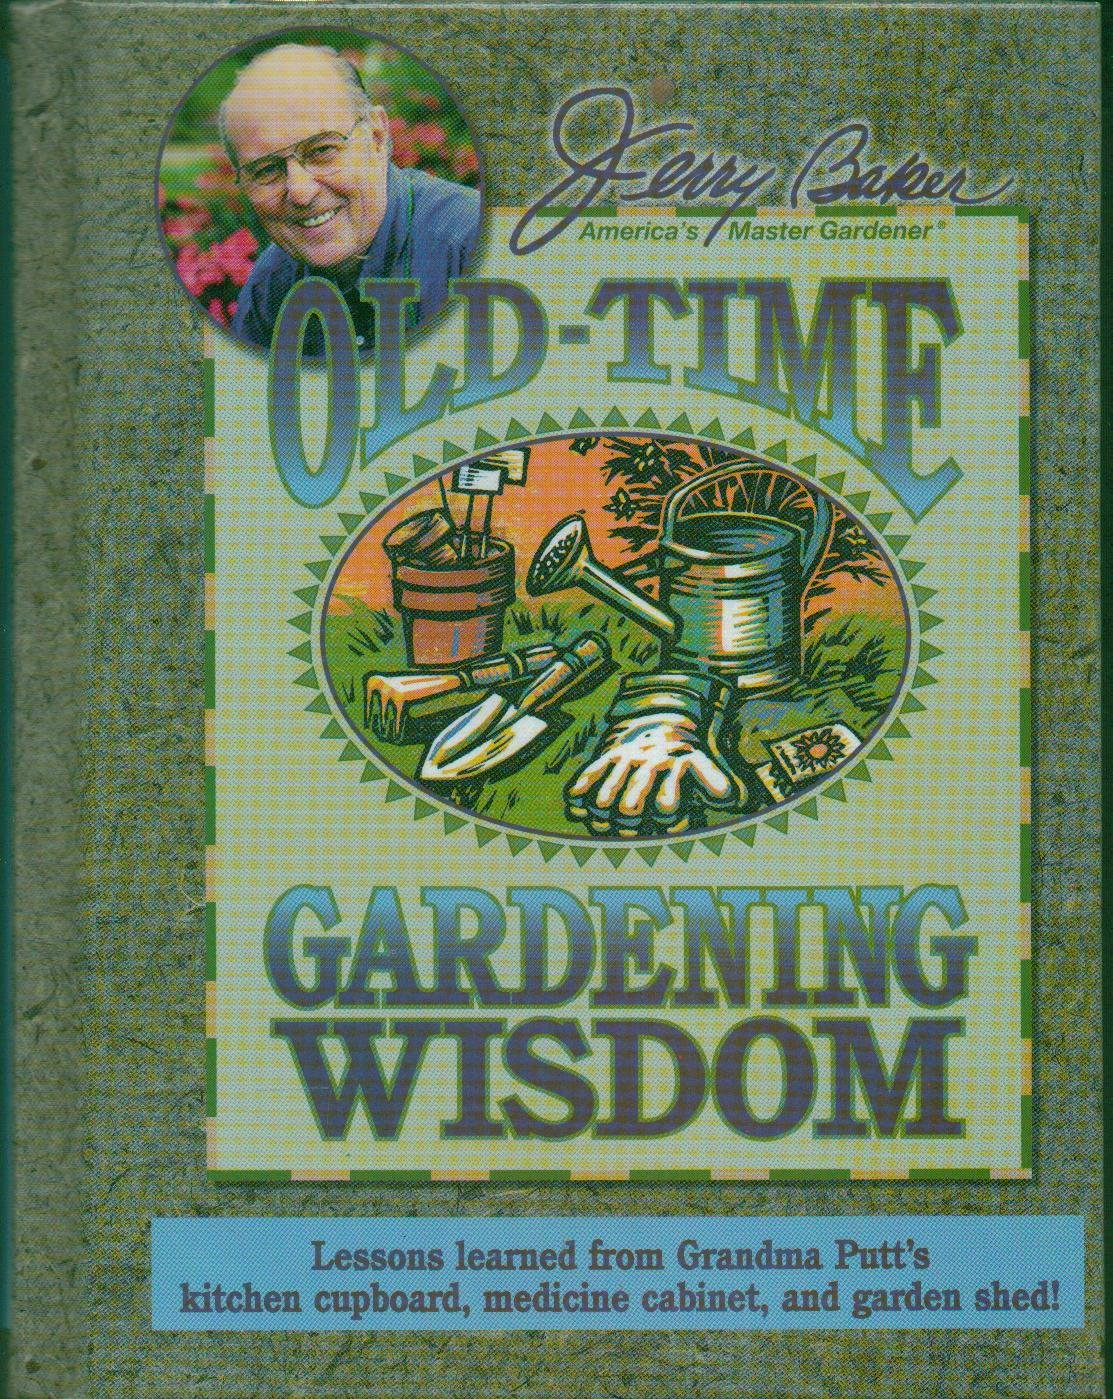 Jerry Baker's Old-time Gardening Wisdom - Lessons Learned From Grandma Putt's Kitchen Cupboard, Medicine Cabinet...